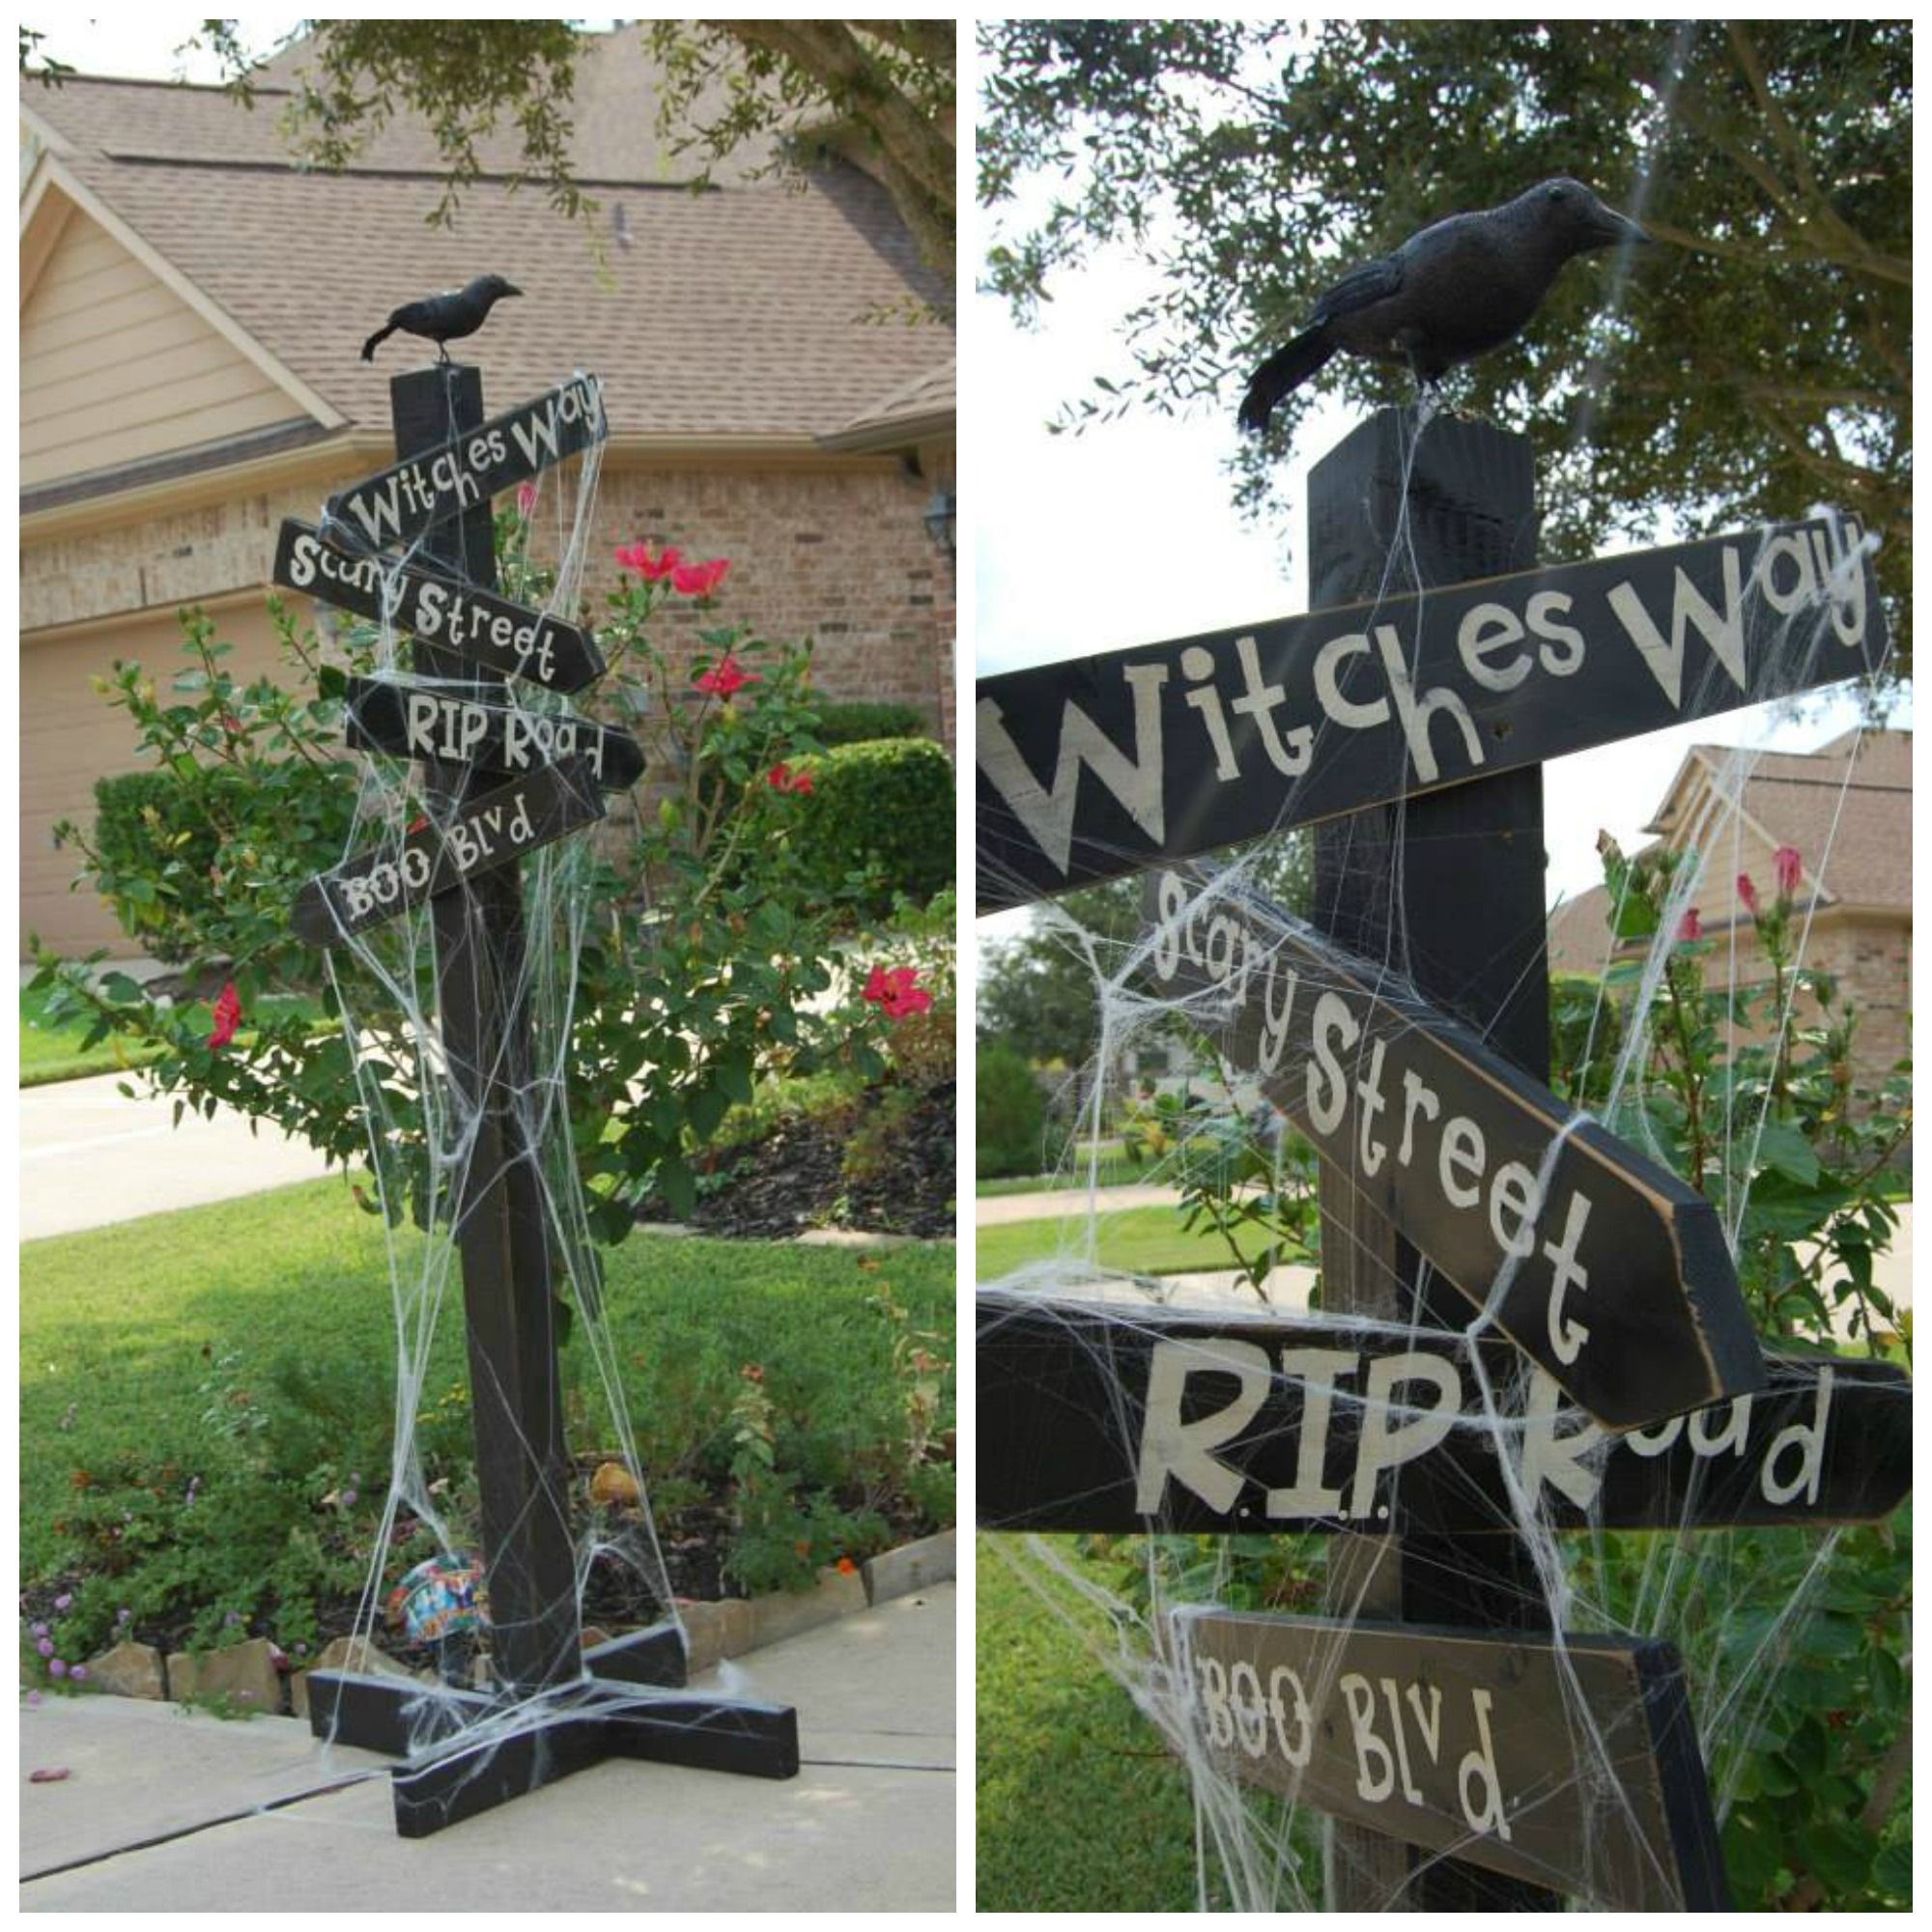 Halloween scary sign for outdoor decorating Halloween Pinterest - outdoor halloween decorating ideas